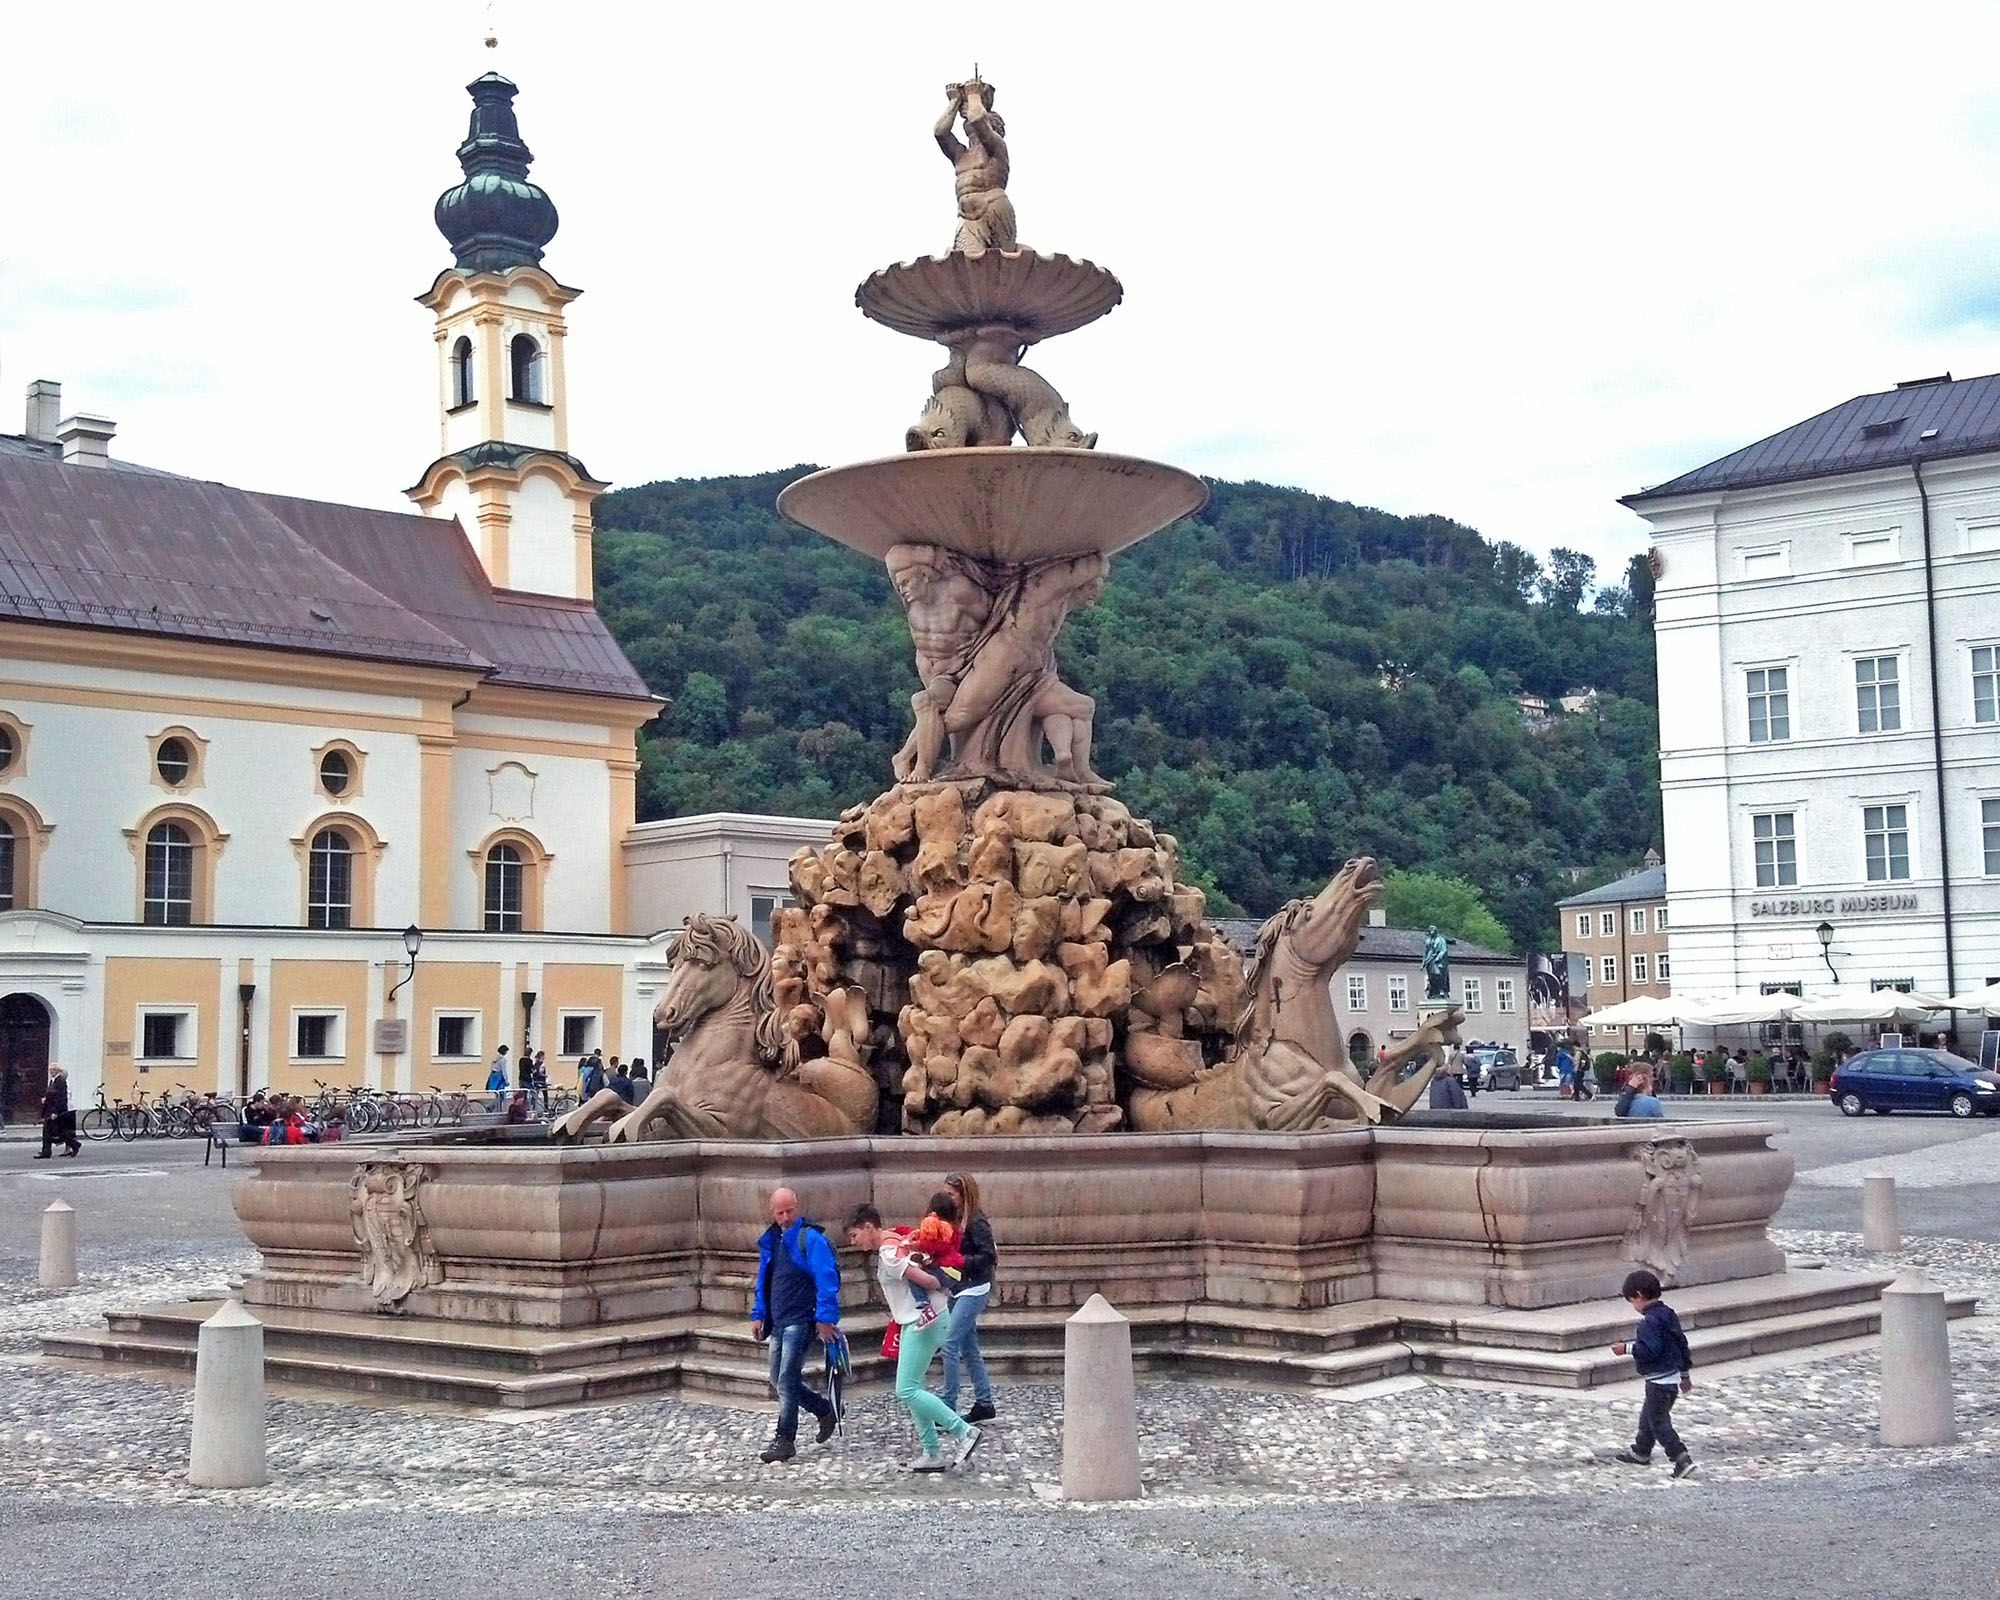 Residence Square with its ornate fountain.